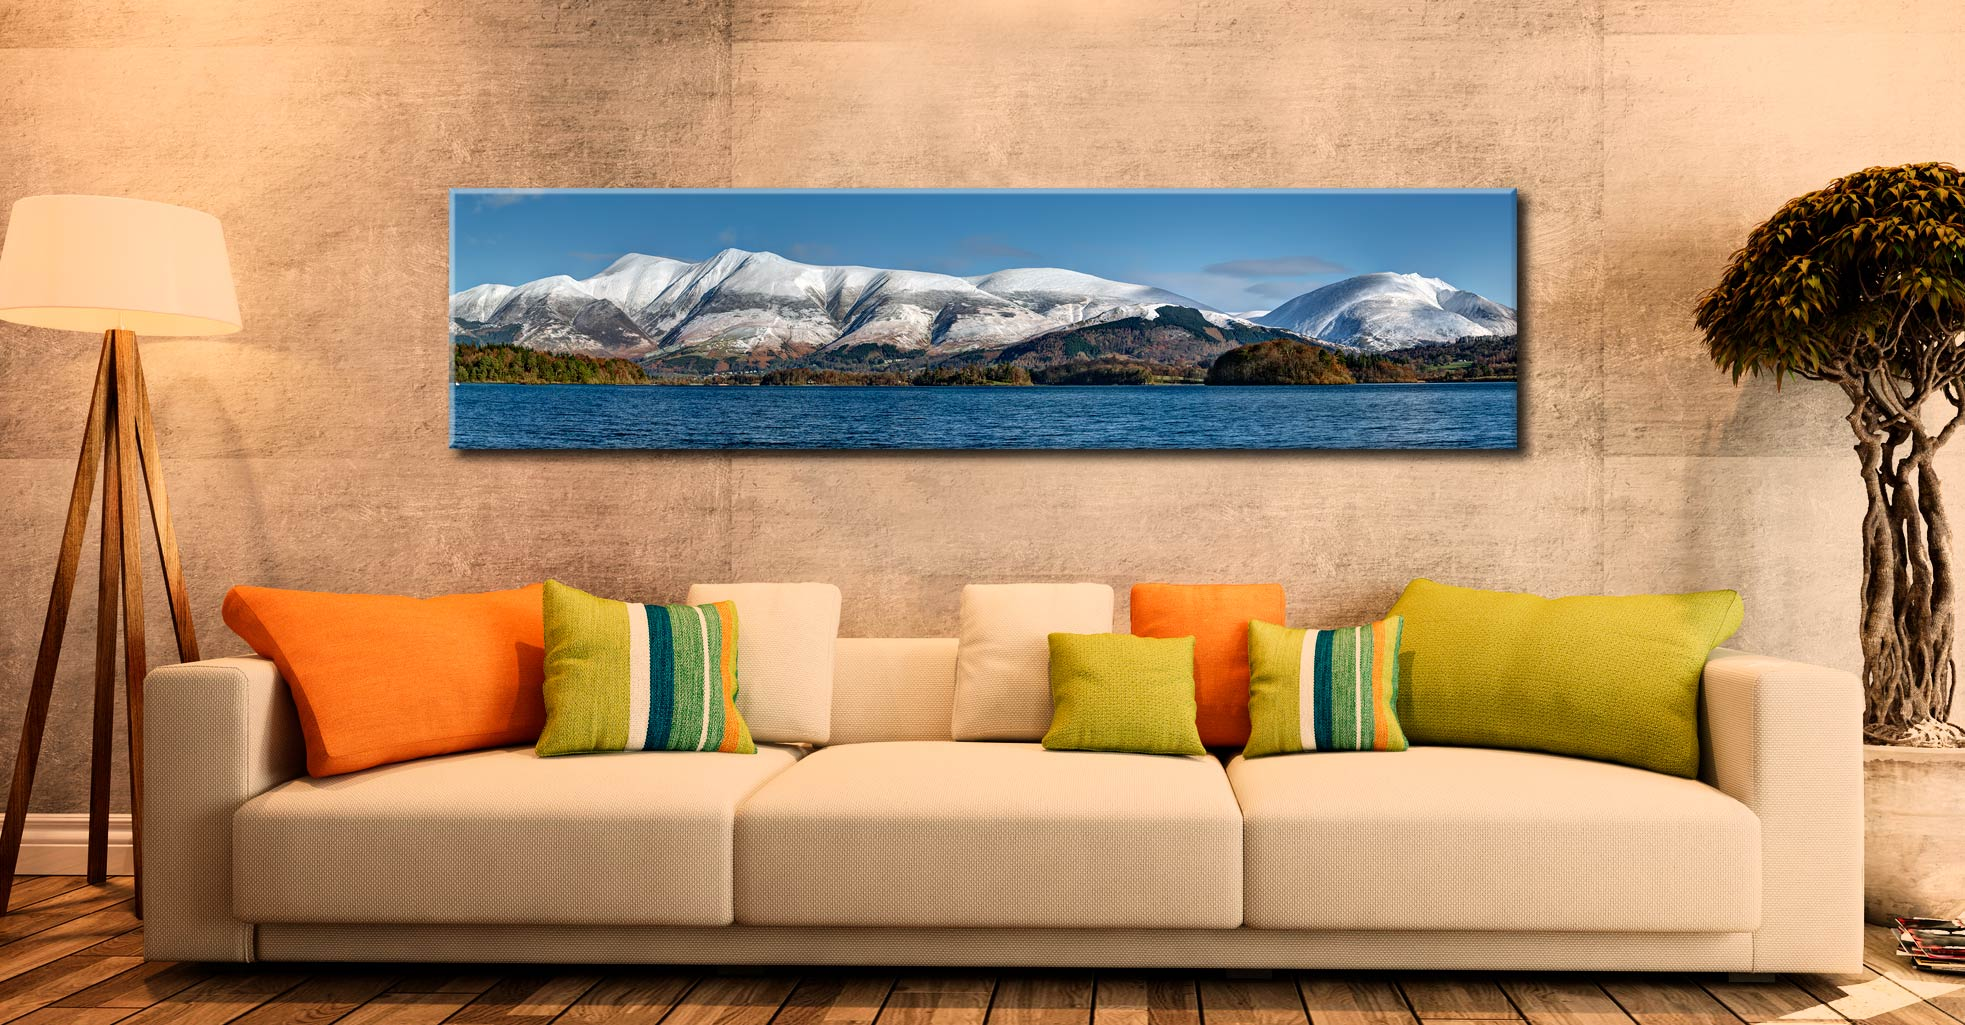 Skiddaw and Saddleback - Lake District Canvas on Wall